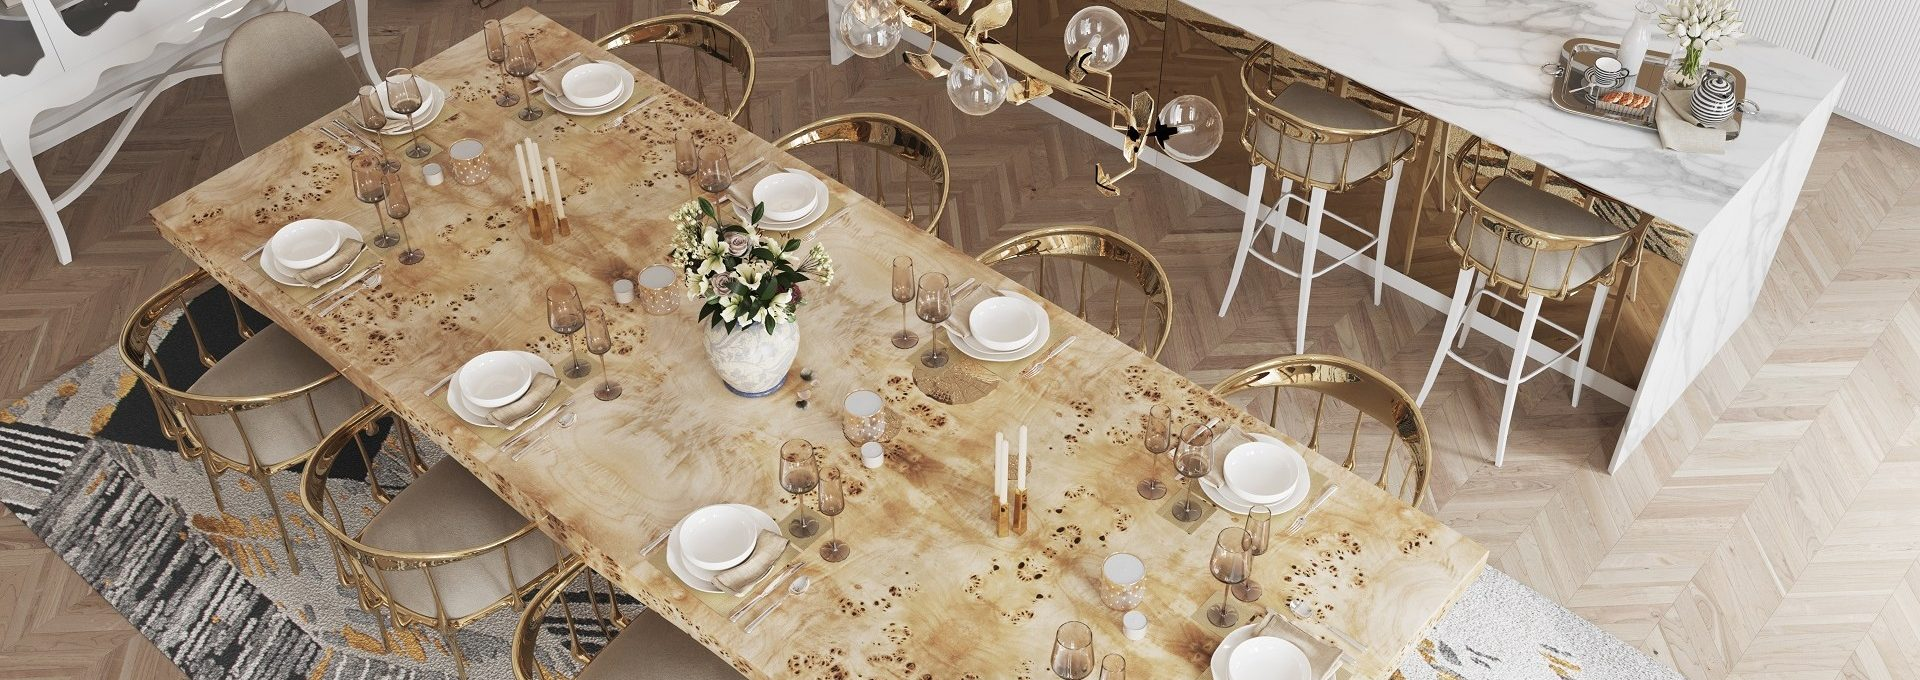 Luxury Dining Room Ideas That Will Inspire You (11)